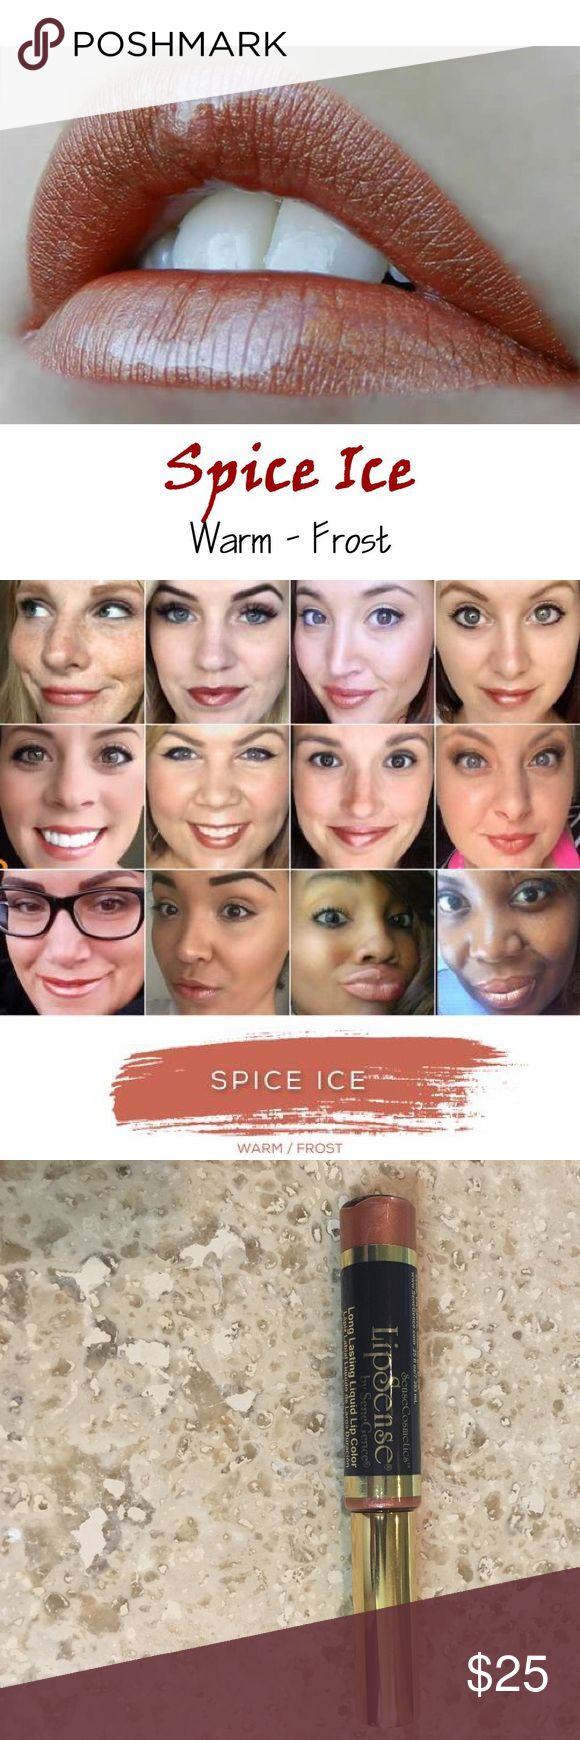 Lipsense Spice Ice 18 Hour Lipcolor Top Seller New Brand new, sealed! Spice Ice is a top selling warm nude color.  The premier product of Senegence, LipSense lasts all day – up to 18 hours. It is water-proof, kiss-proof, smudge-proof, and completely budge-proof. LipSense comes in a variety of captivating colors and can be layered to produce your own custom look.  Must be used with a Lipsense gloss. Brand new, sealed!  COMMENT BELOW WITH YOUR EMAIL TO GET DISCOUNT INFORMATION, I always sell…